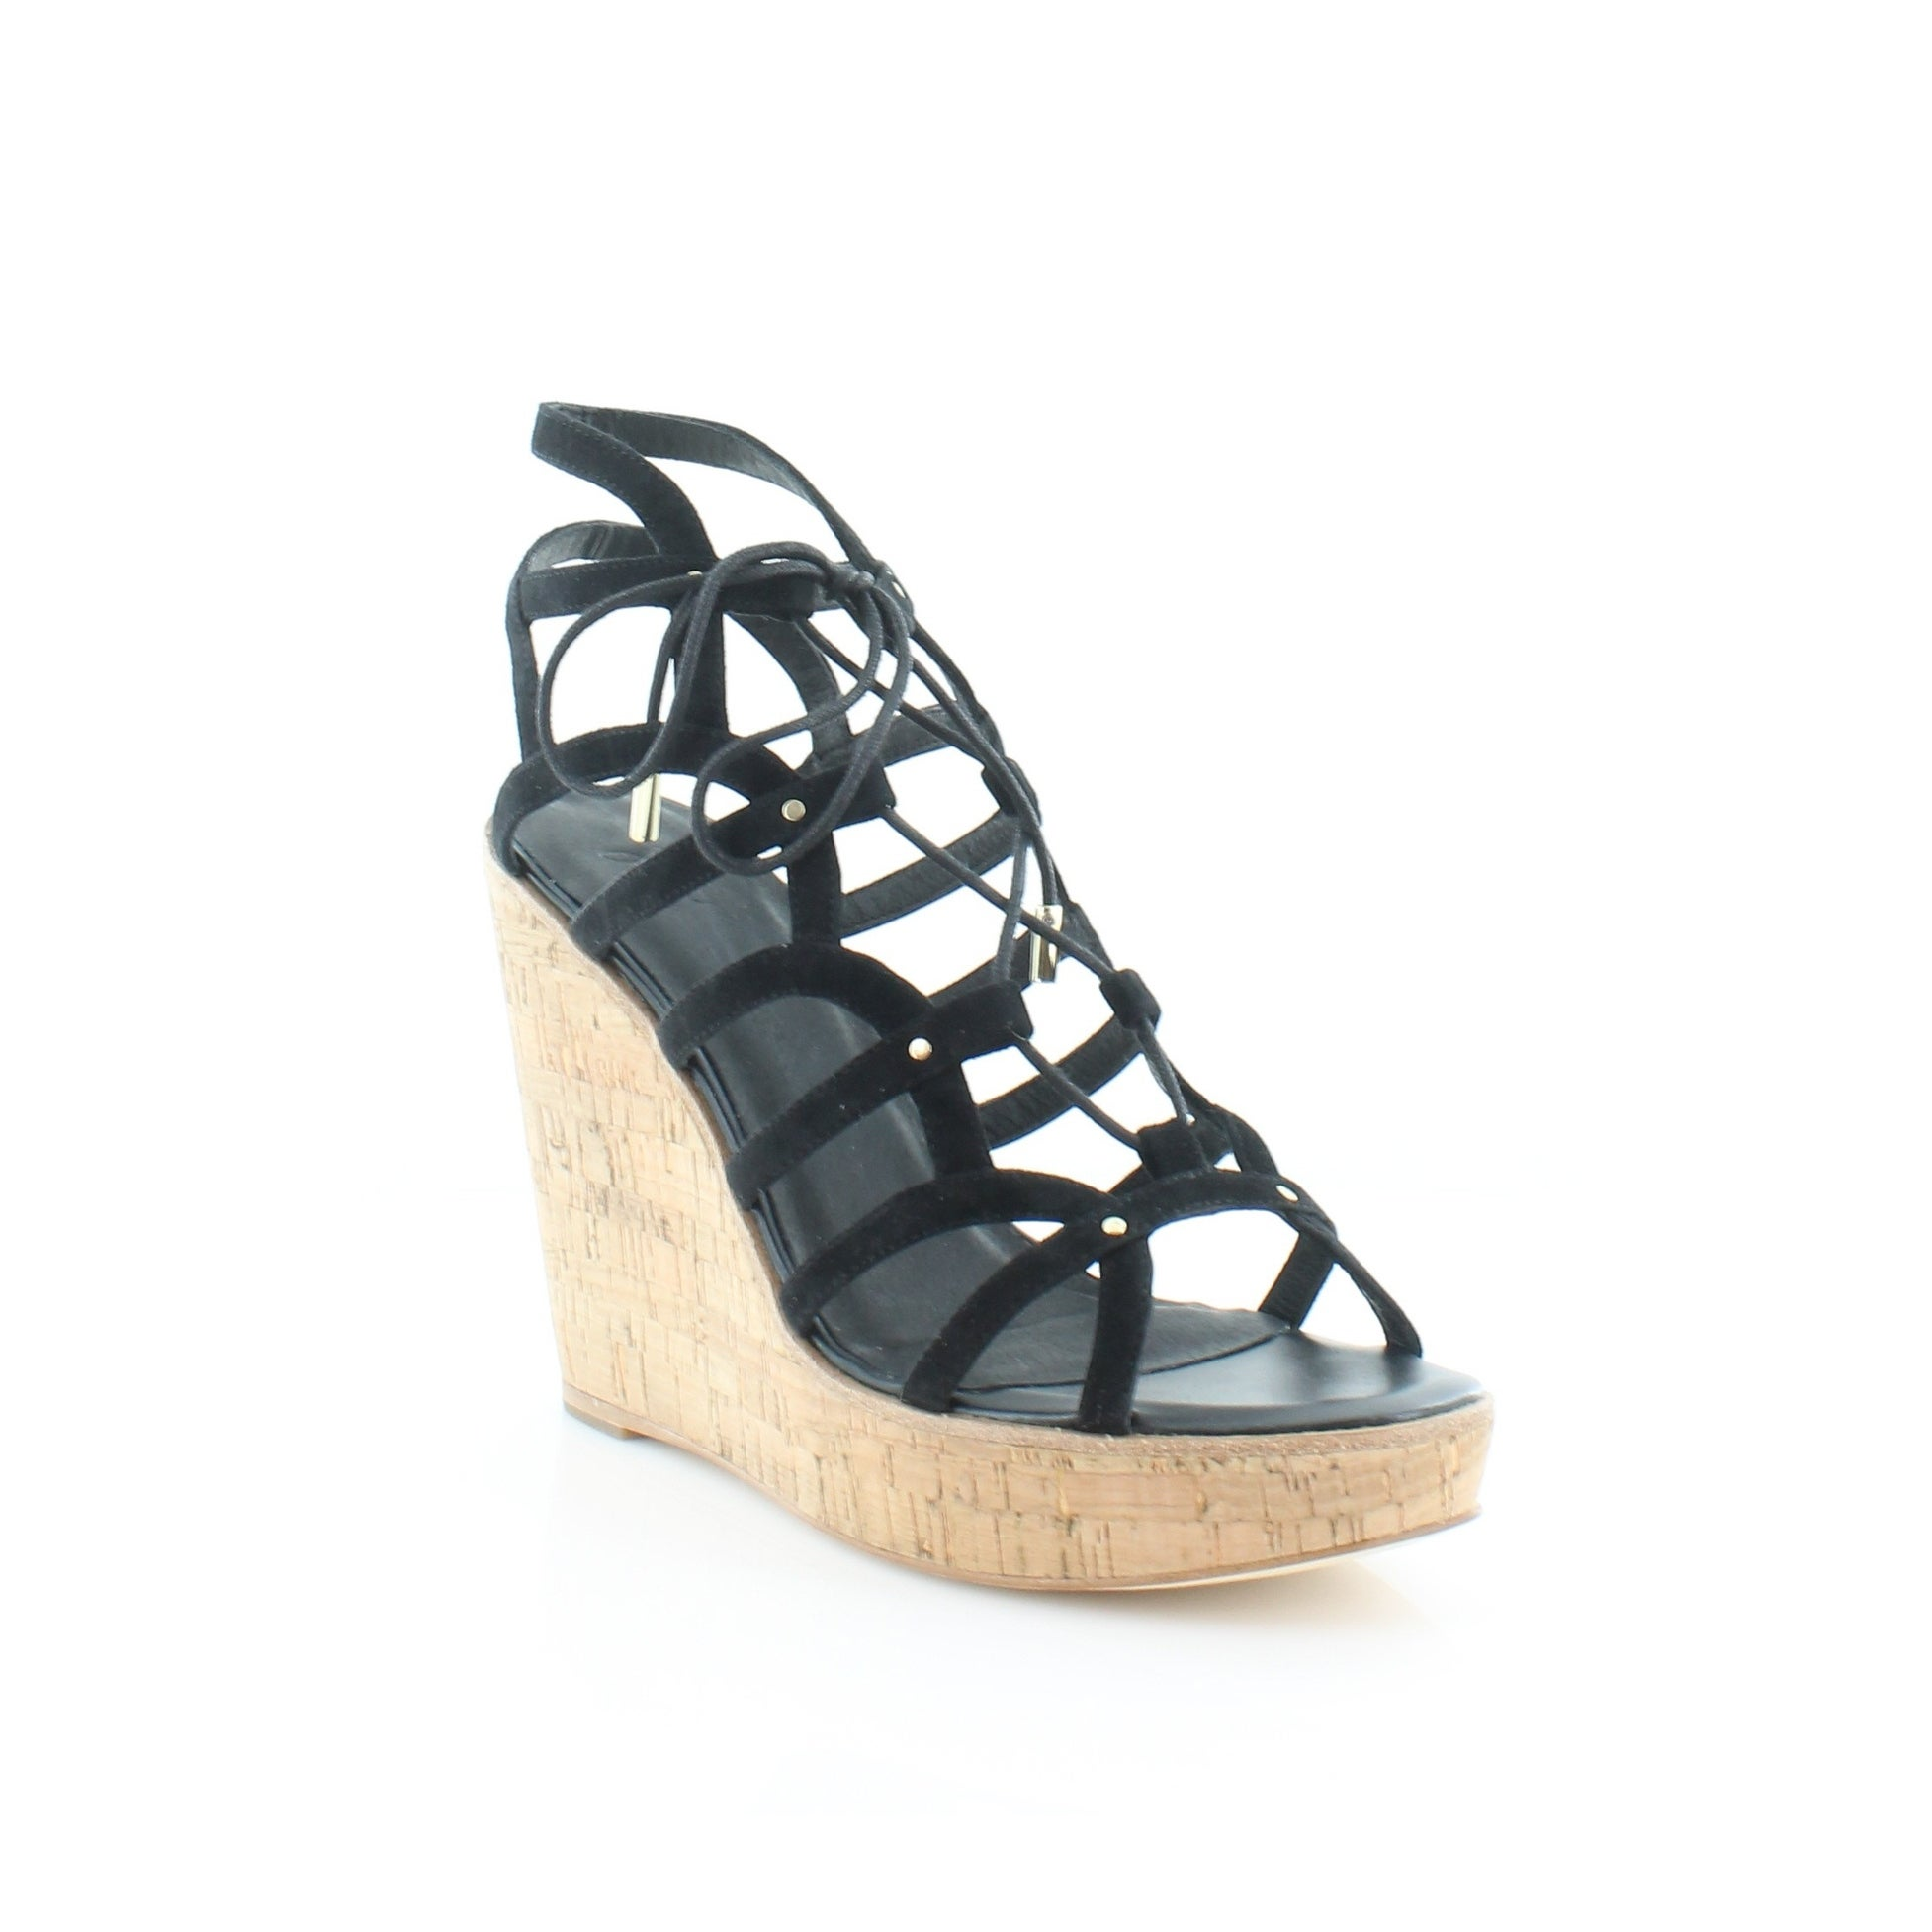 e70f4cf584f Shop Joie Larissa Women s Sandals Black - Free Shipping Today - Overstock -  21551501